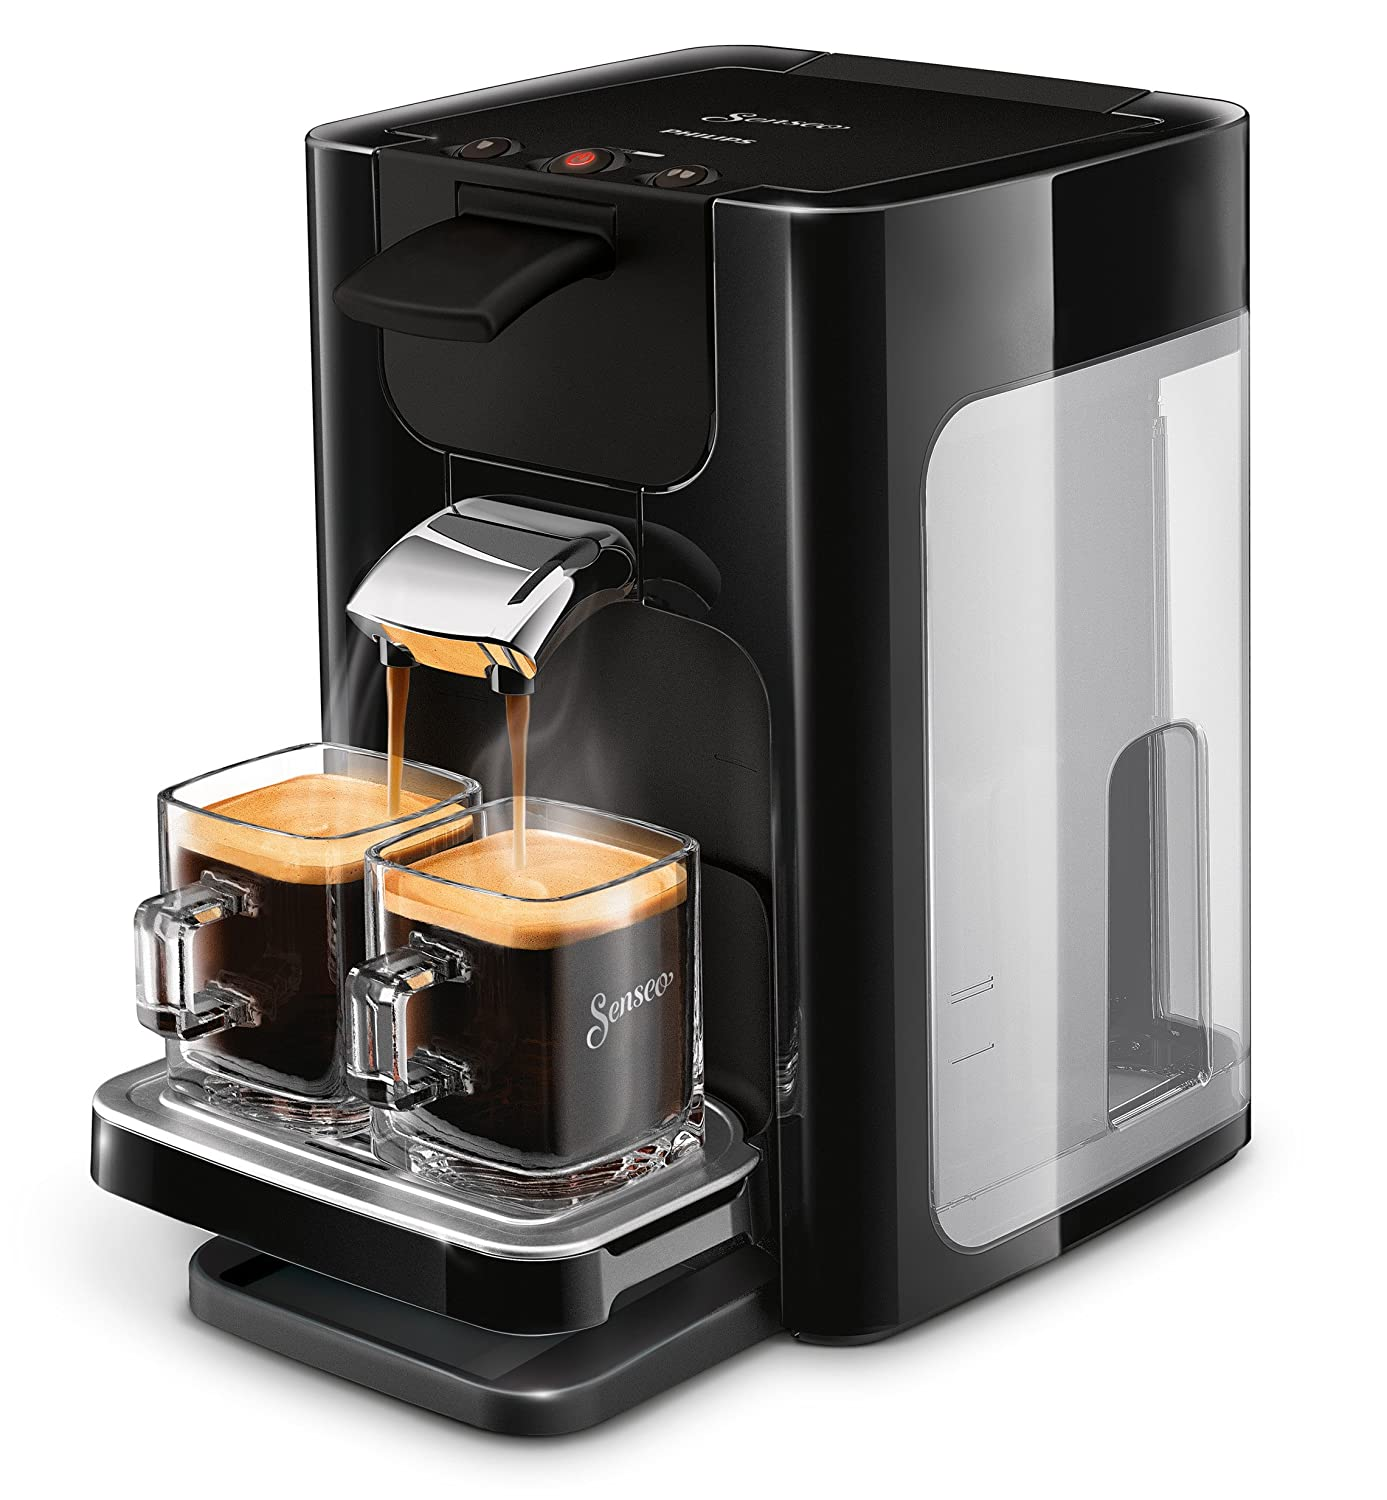 Senseo Quadrante hd7865/60 Coffee Machine in Capsules 1.2L 8 Cups Black – Coffee (Freestanding, Coffee Machine in Capsules, Coffee Beans, Coffee Pods, Black, Buttons, 50/60 Hz) Philips